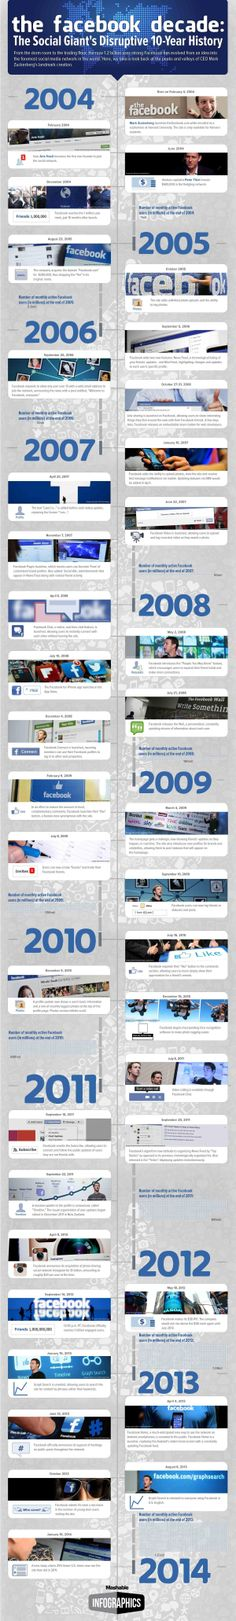 The #Facebook decade